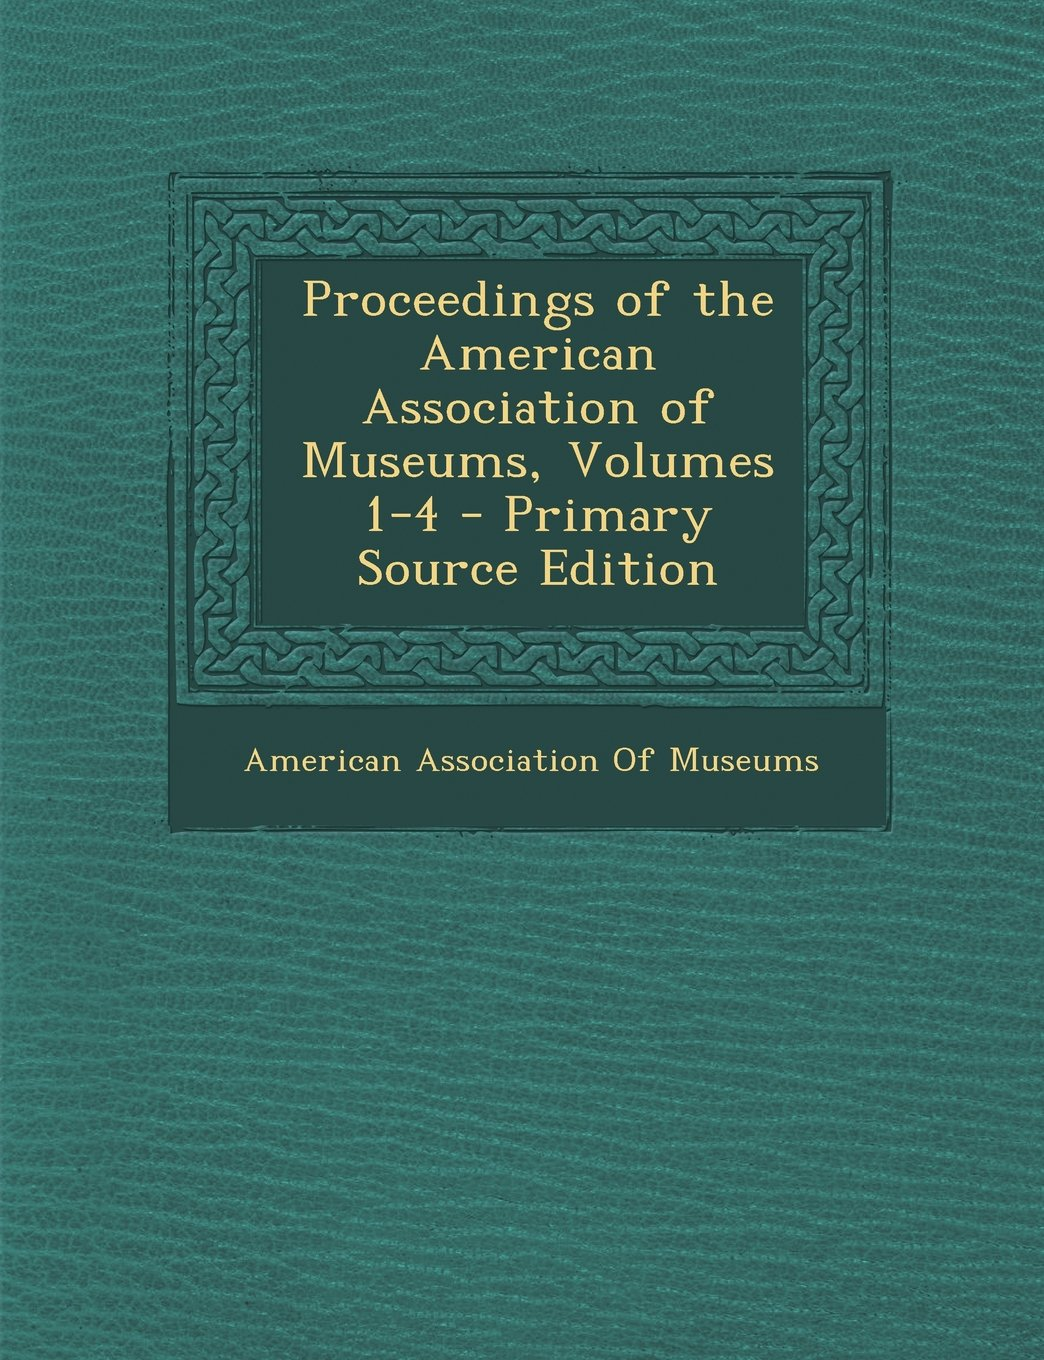 Proceedings of the American Association of Museums, Volumes 1-4 pdf